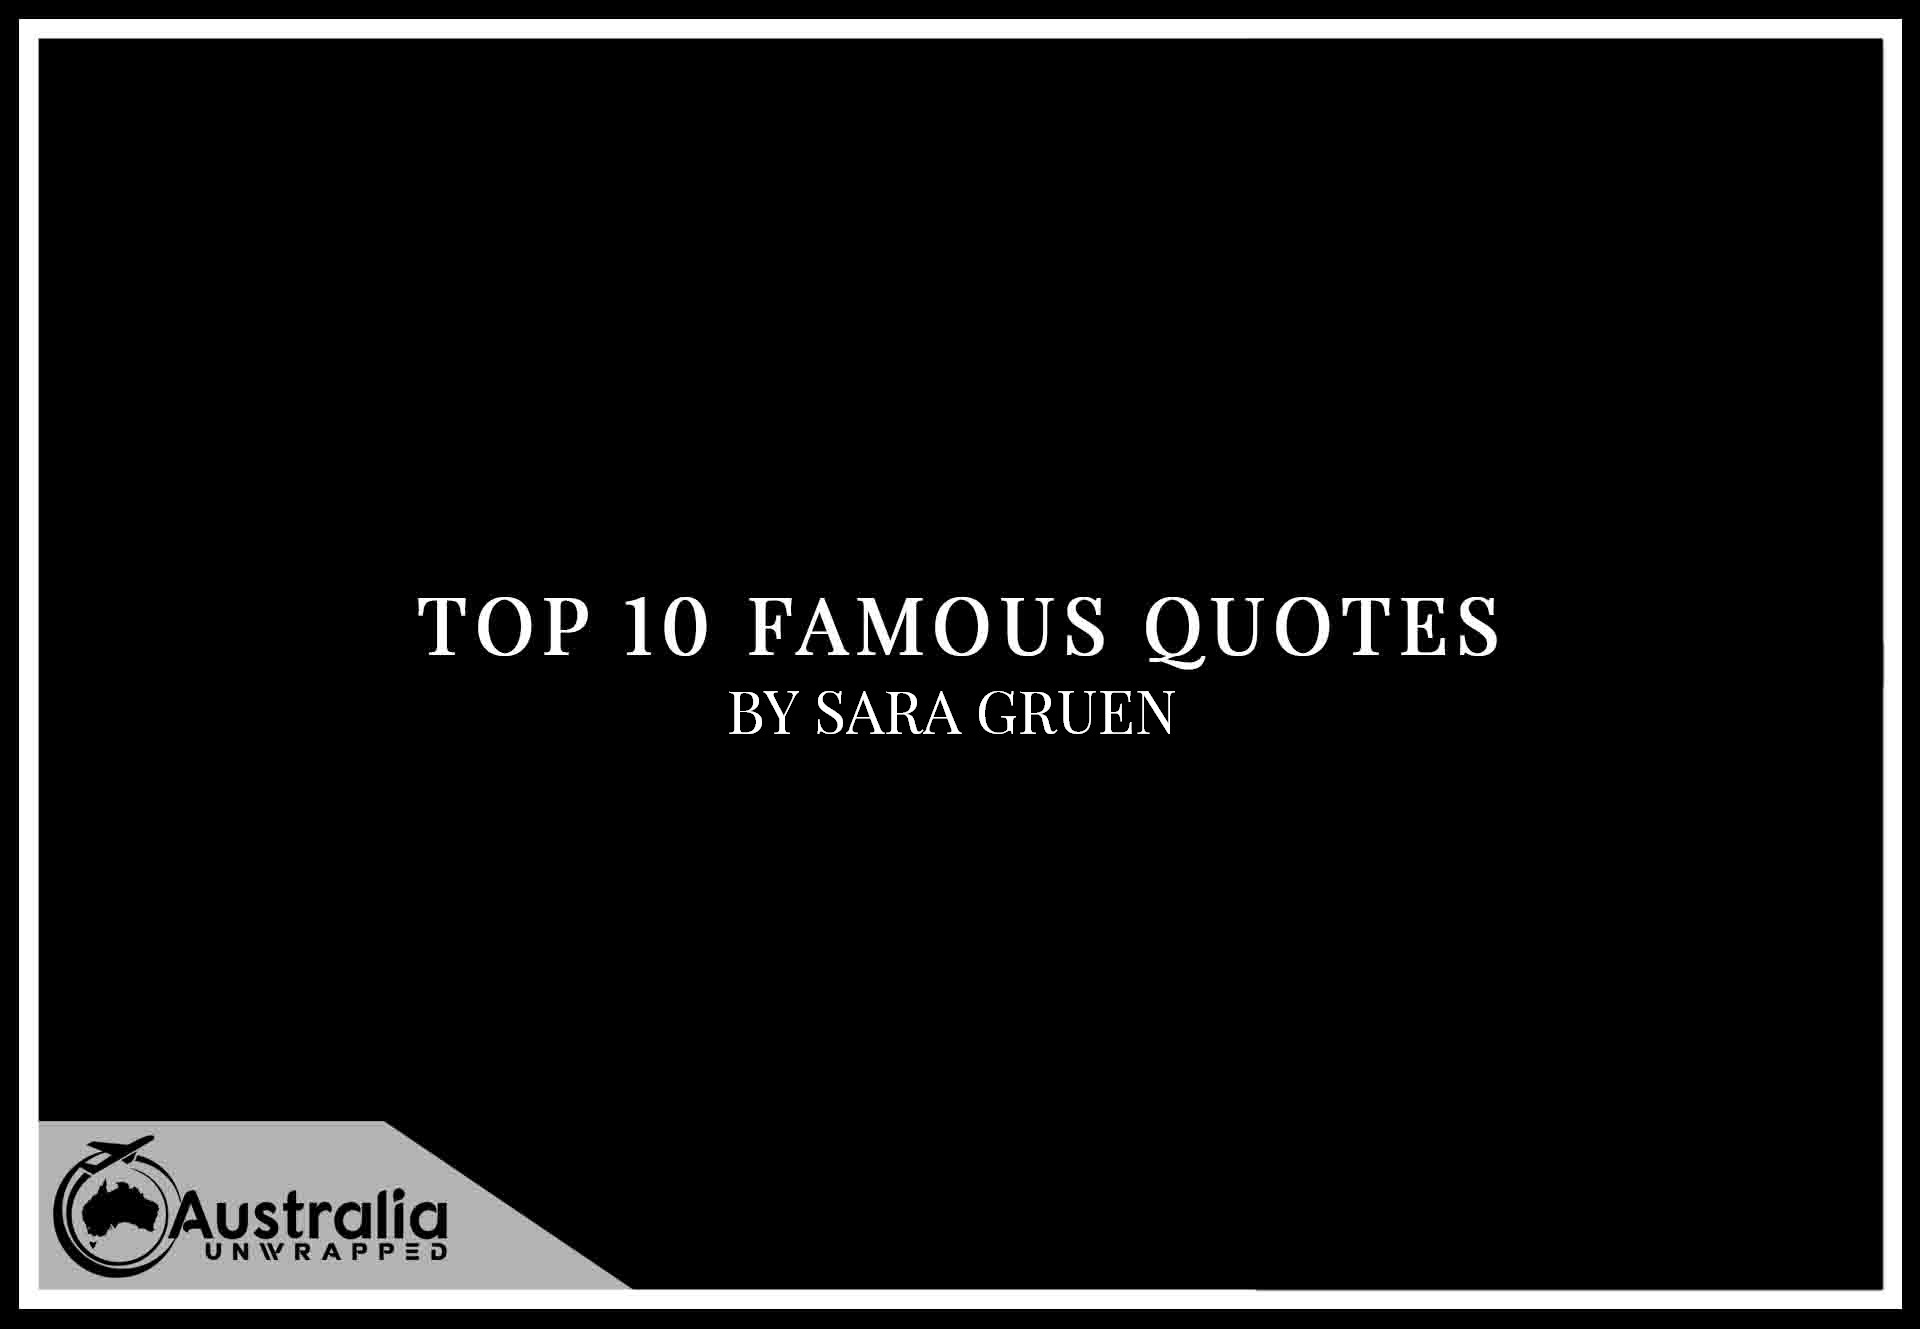 Top 10 Famous Quotes by Author sara gruen